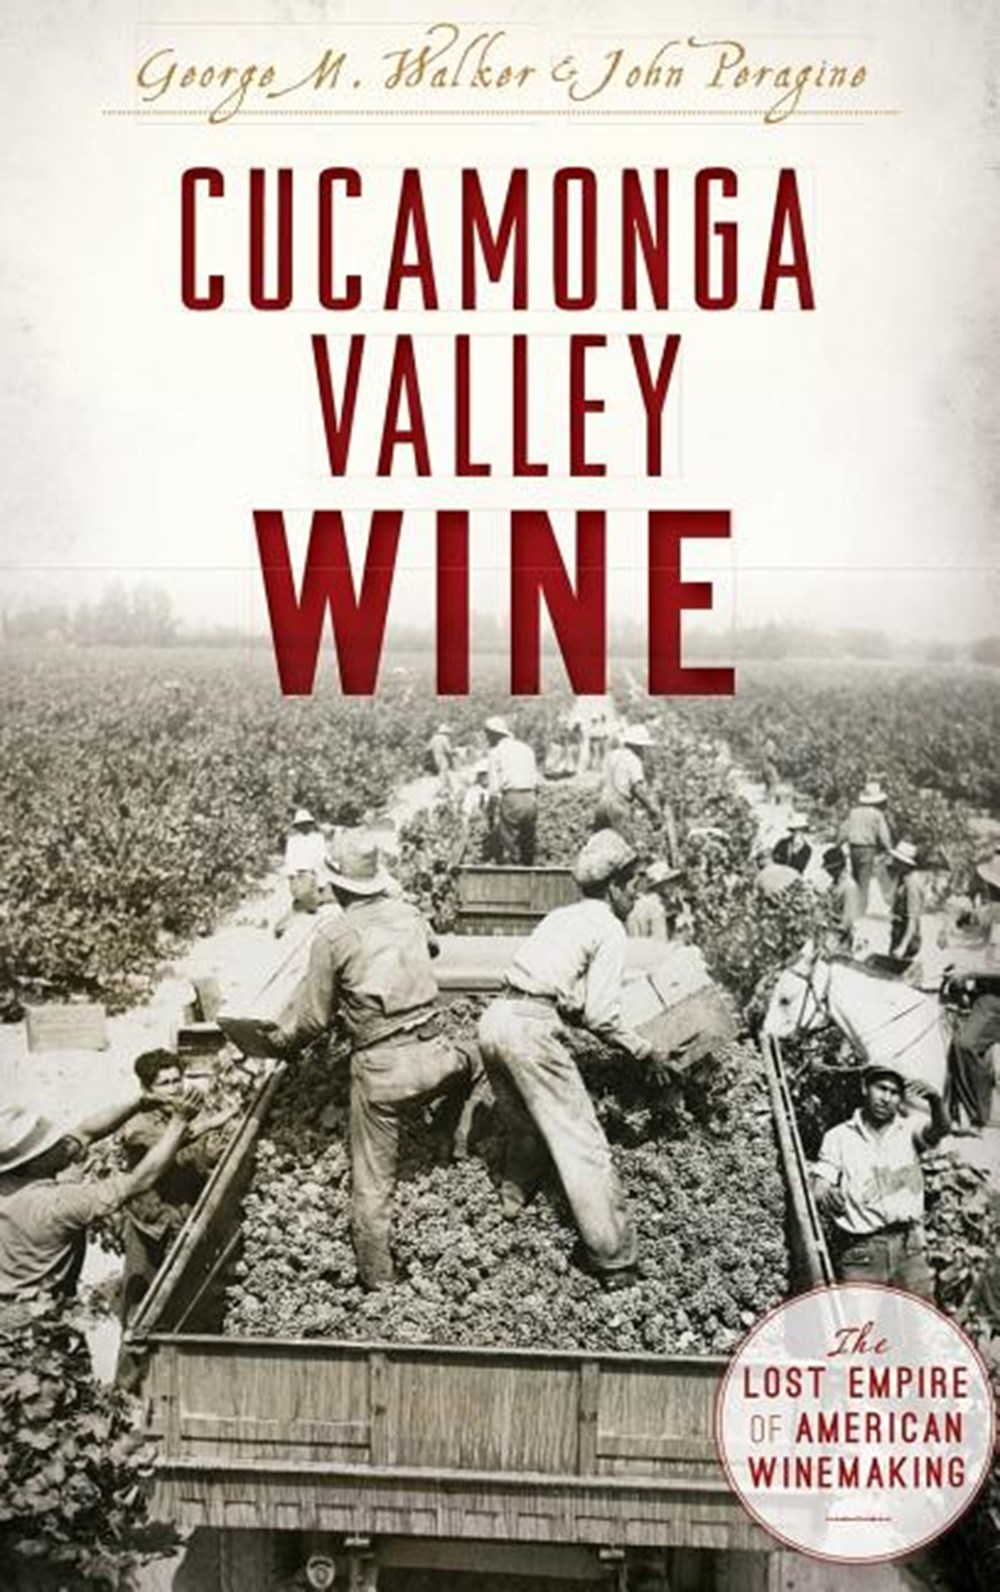 Cucamonga Valley Wine The Lost Empire of American Winemaking